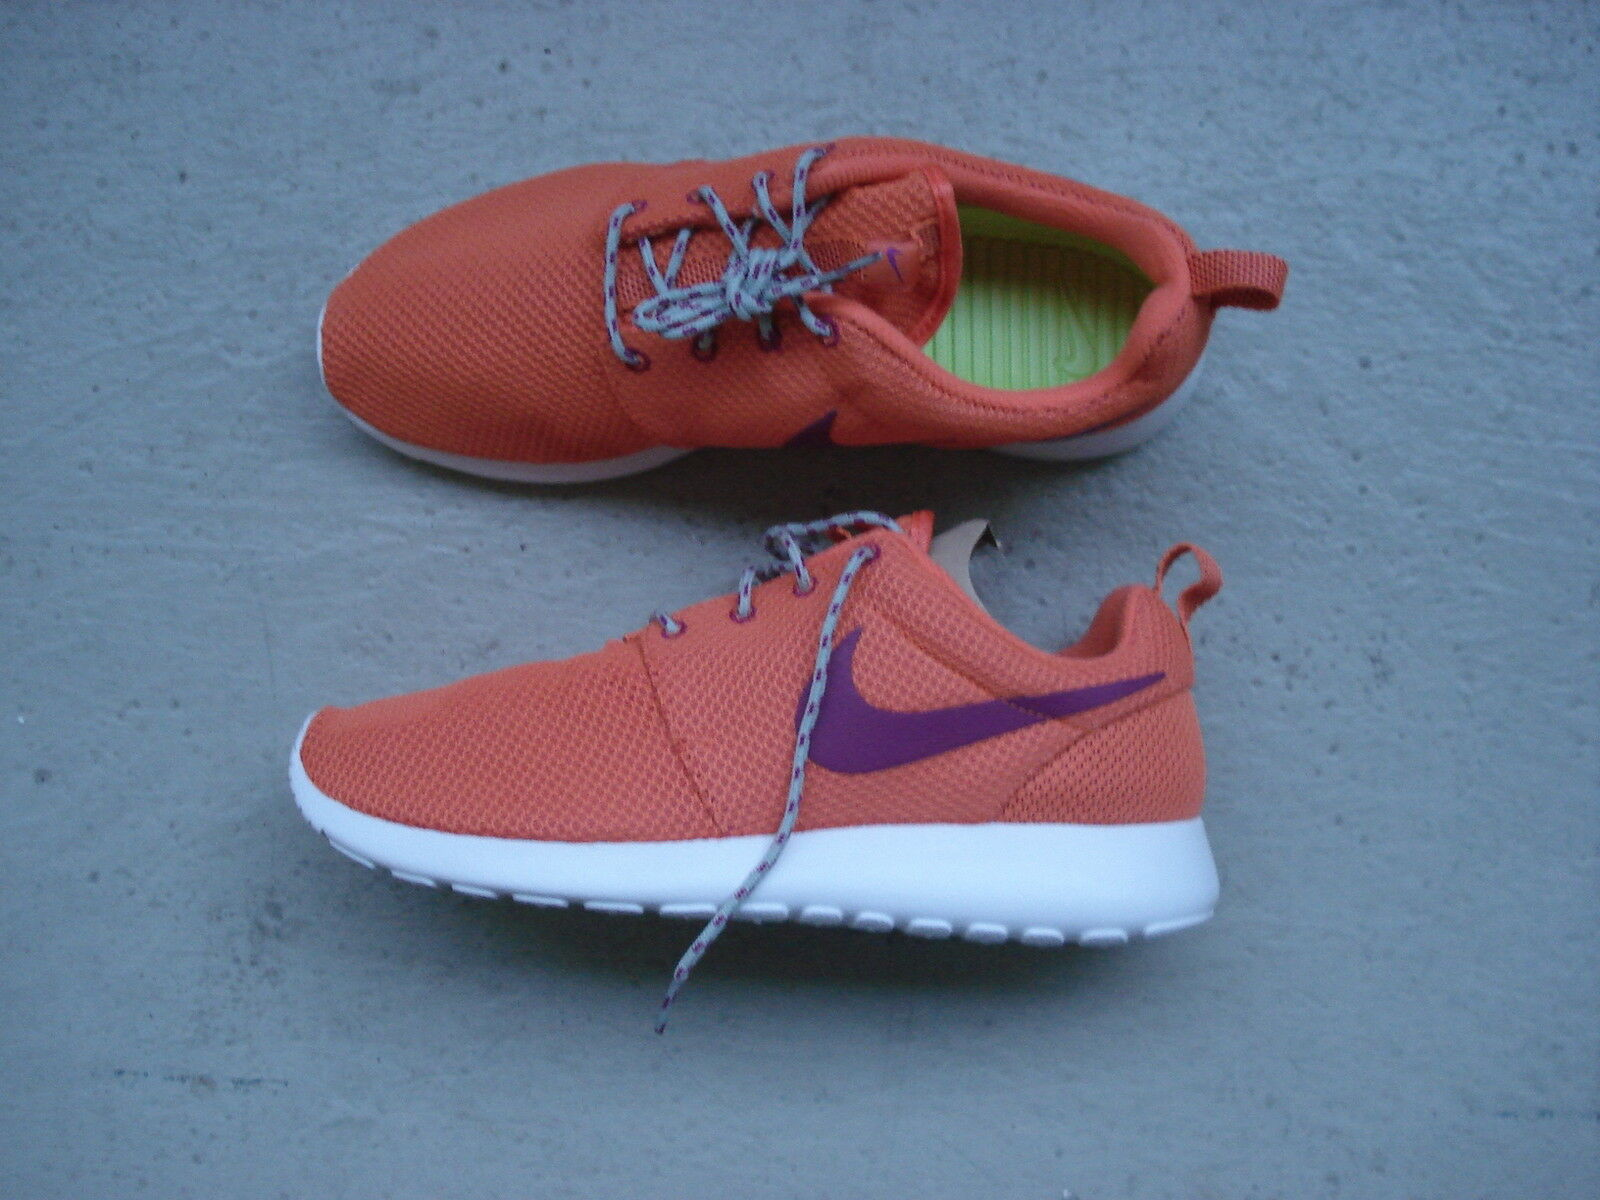 WMNS Nike Air Roshe courir 44.5 Trf Orng/Brght Mgnt-S Spry-Whi